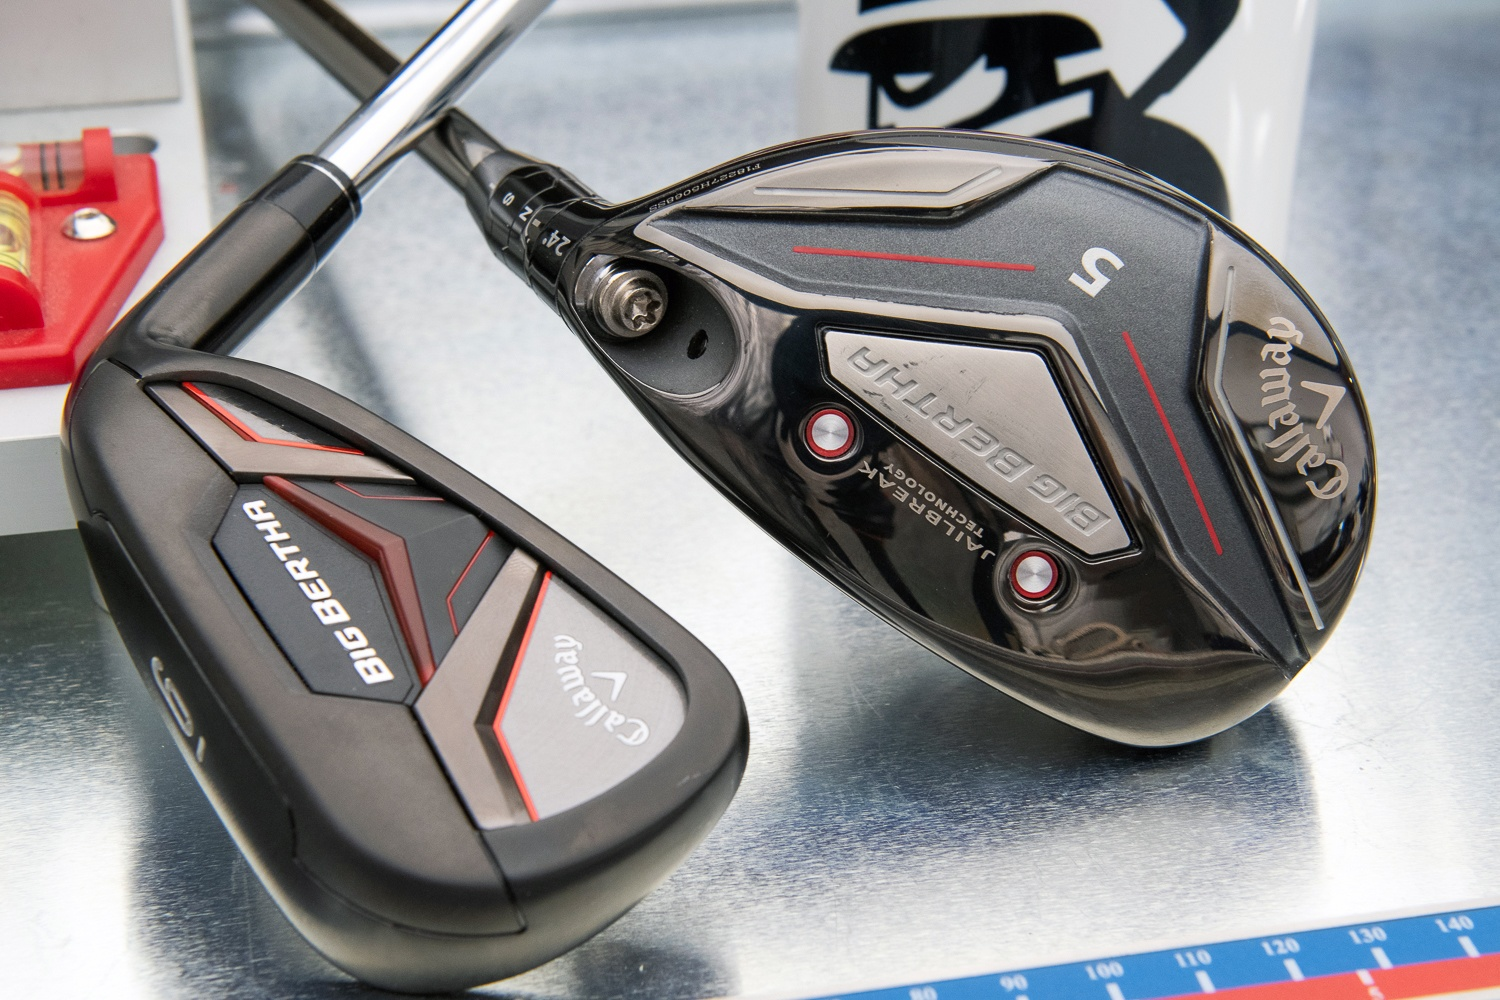 First Look – 2019 Callaway Big Bertha Irons and Hybrids